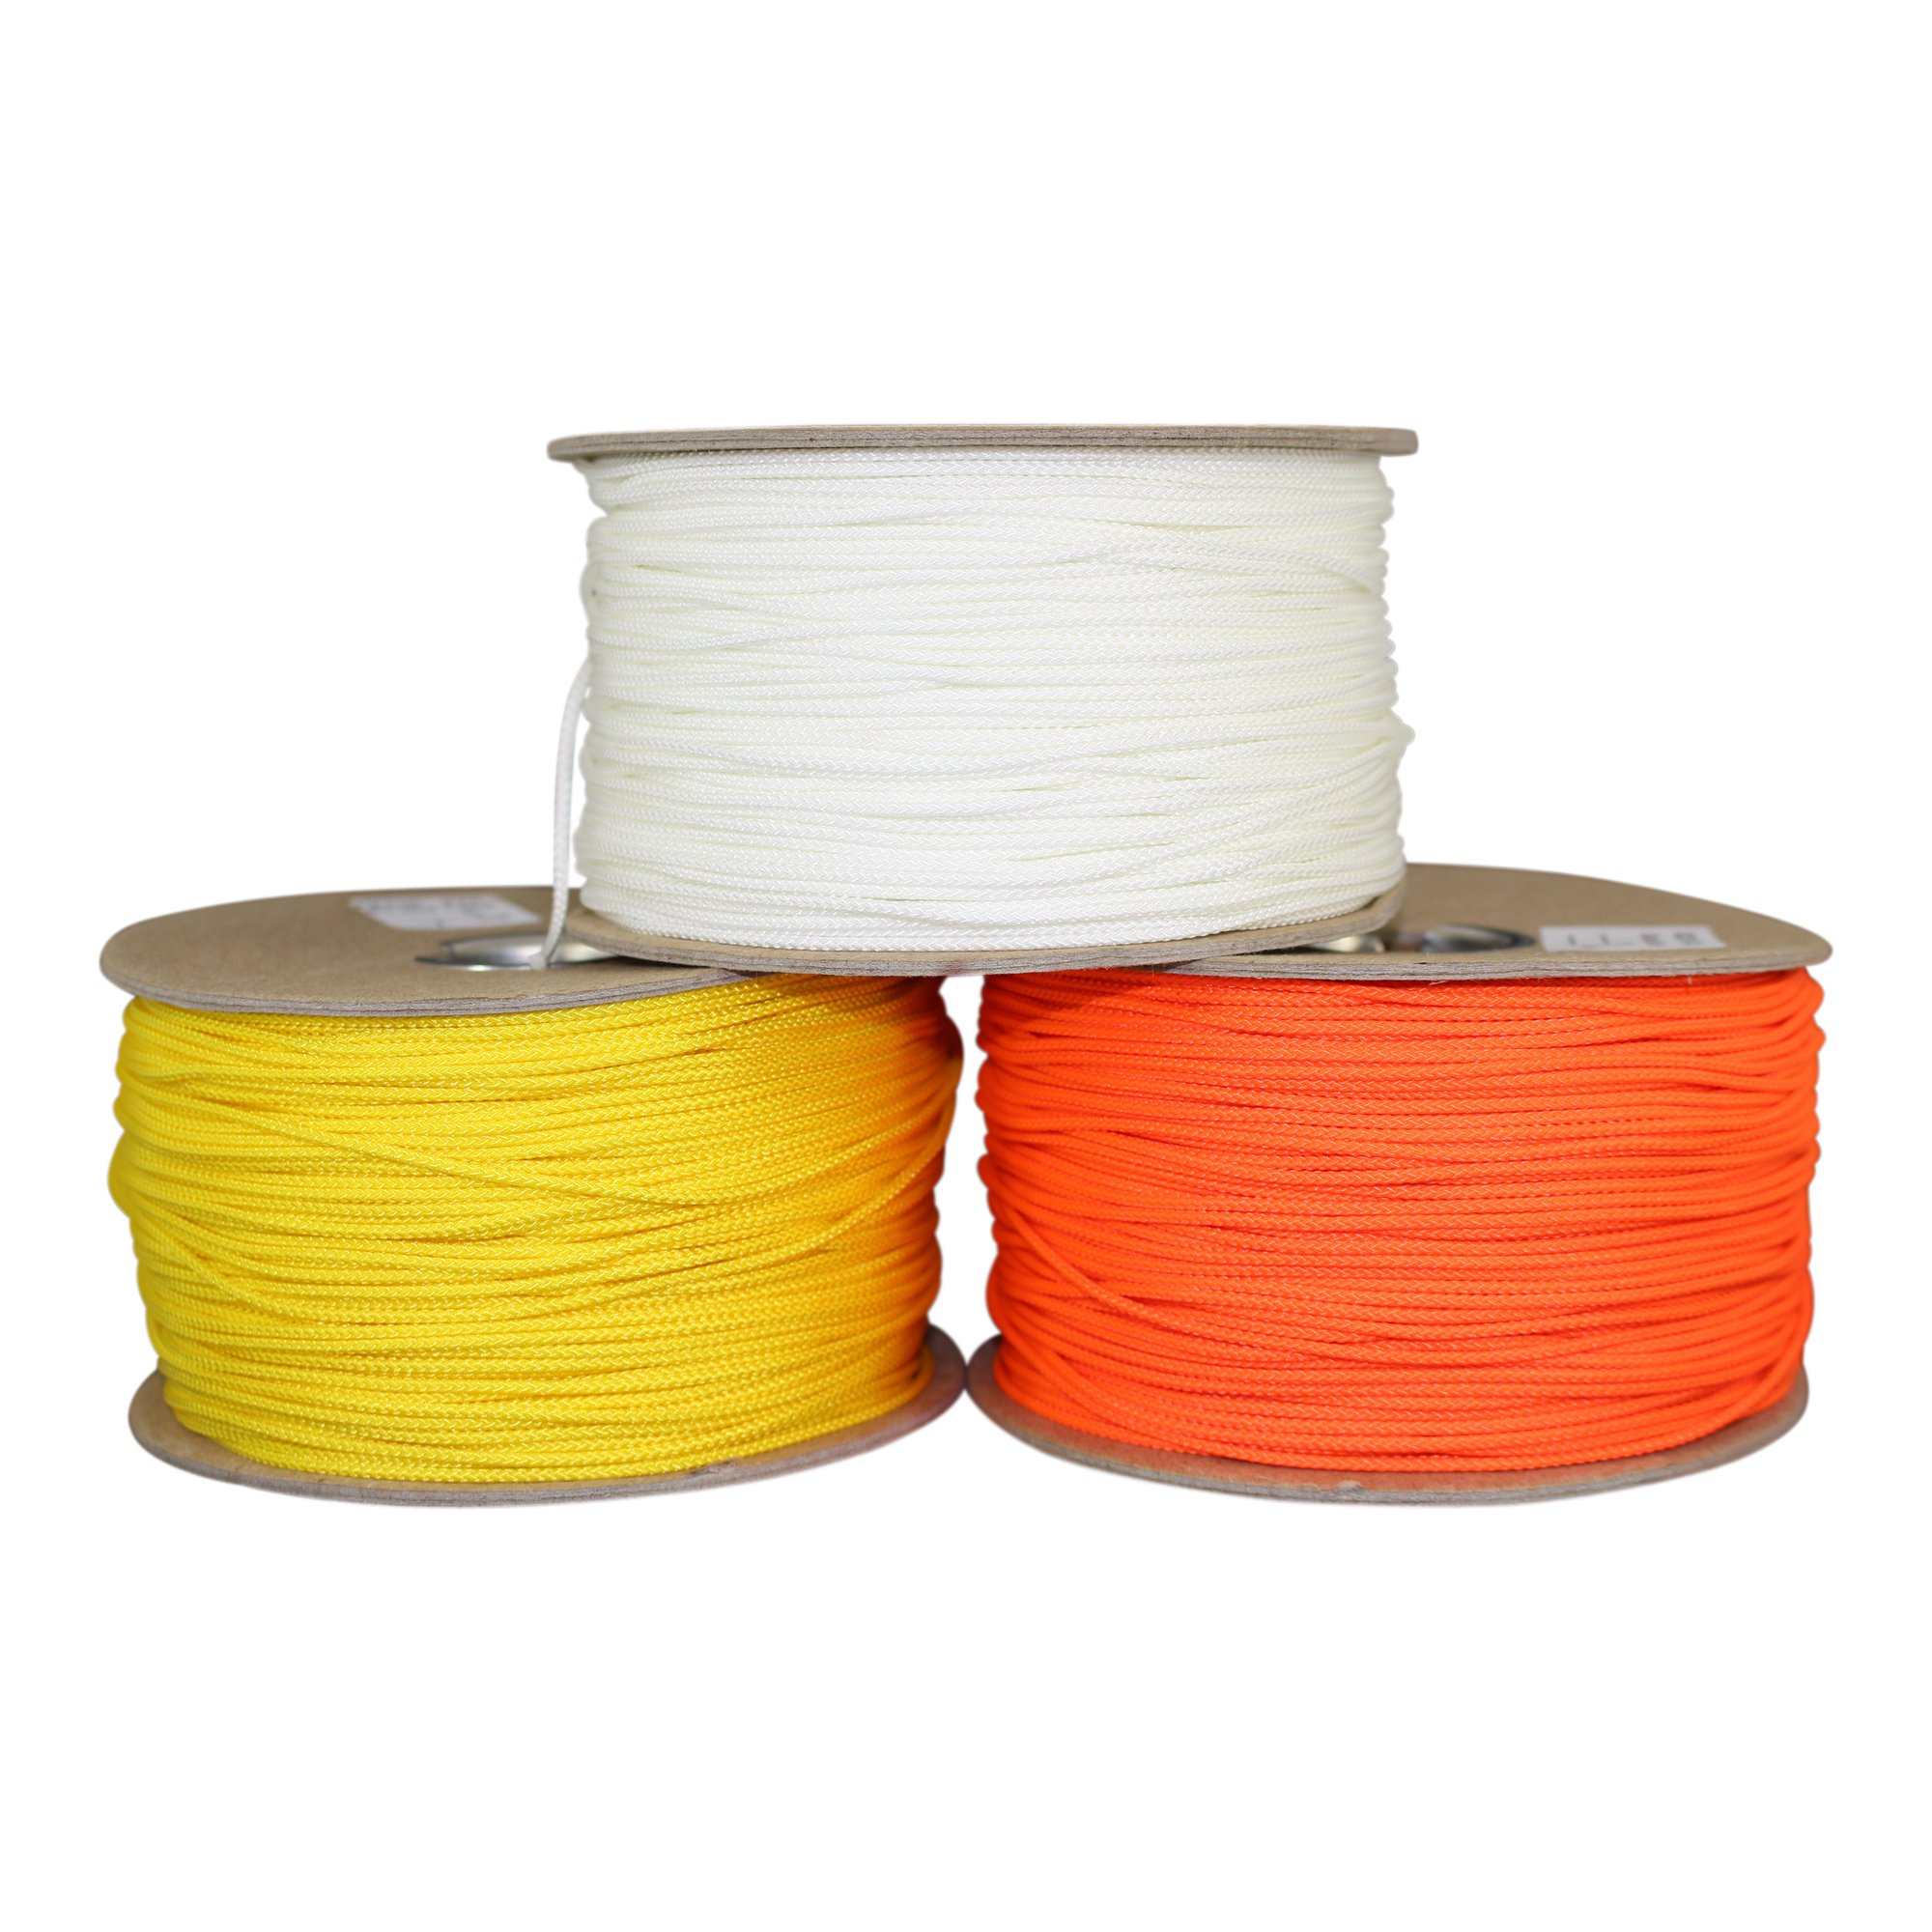 SGT KNOTS Scuba Diving Reel Line Dacron Polyester #36 - High Visibility Neon Line for Scuba Dive Reel - Deep Sea, Wreck and Cave Diving, Safety Dive Marker, Dive Float Flag (420 feet - Yellow) by SGT KNOTS